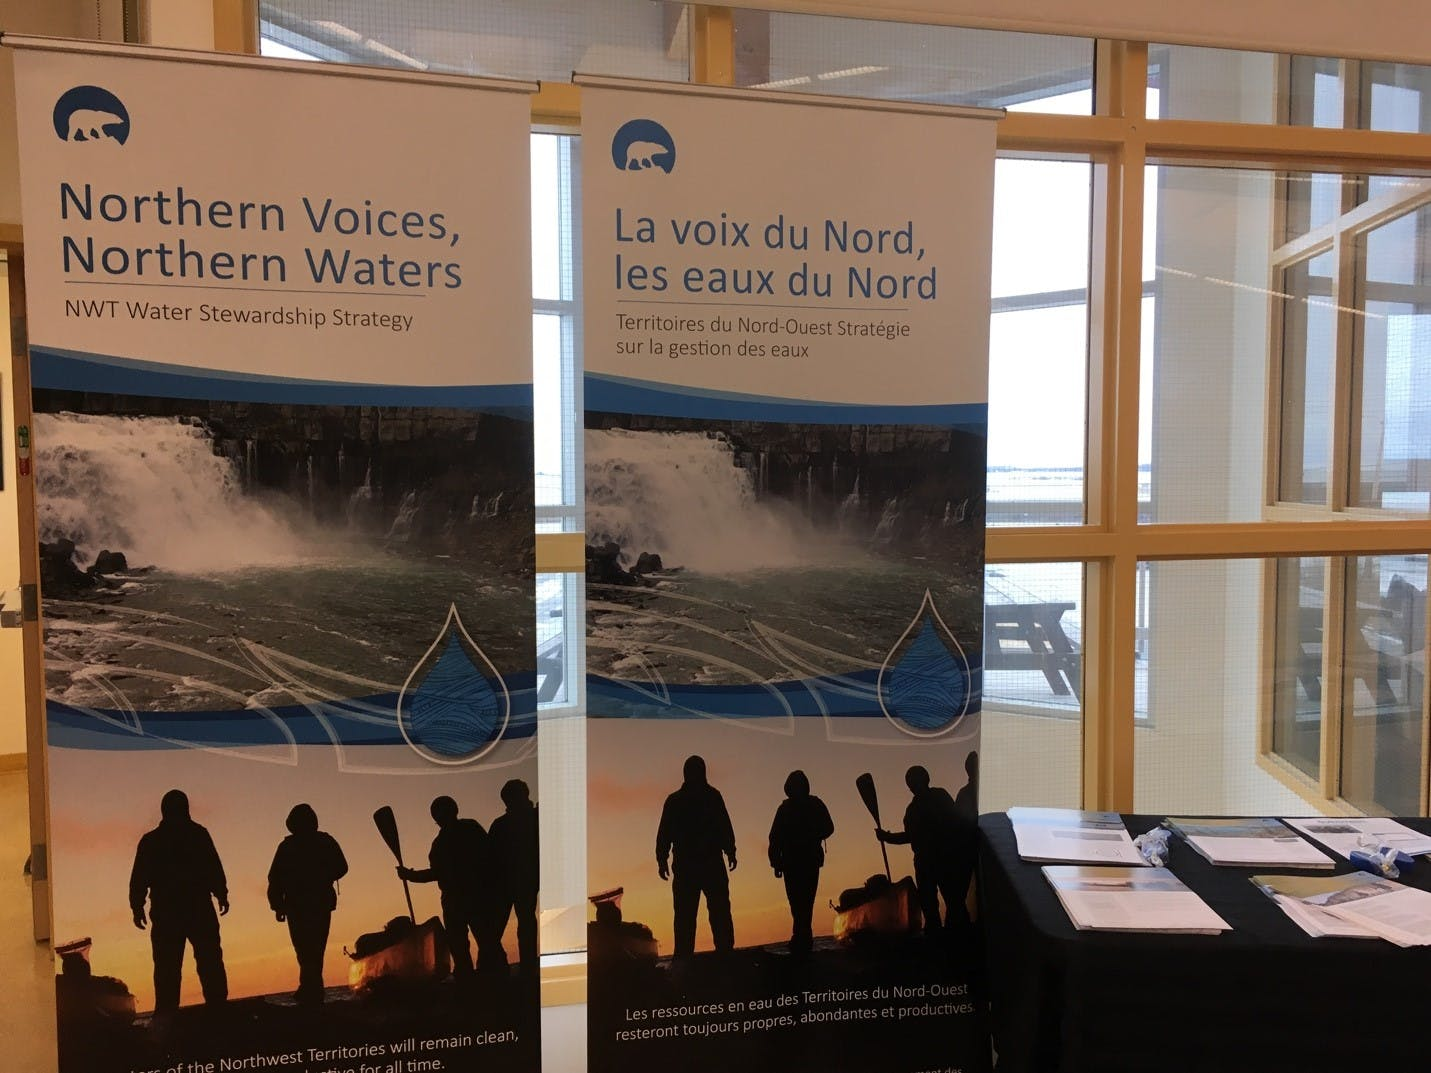 Banners displaying Northern Voices, North Waters: NWT Water Stewardship Strategy